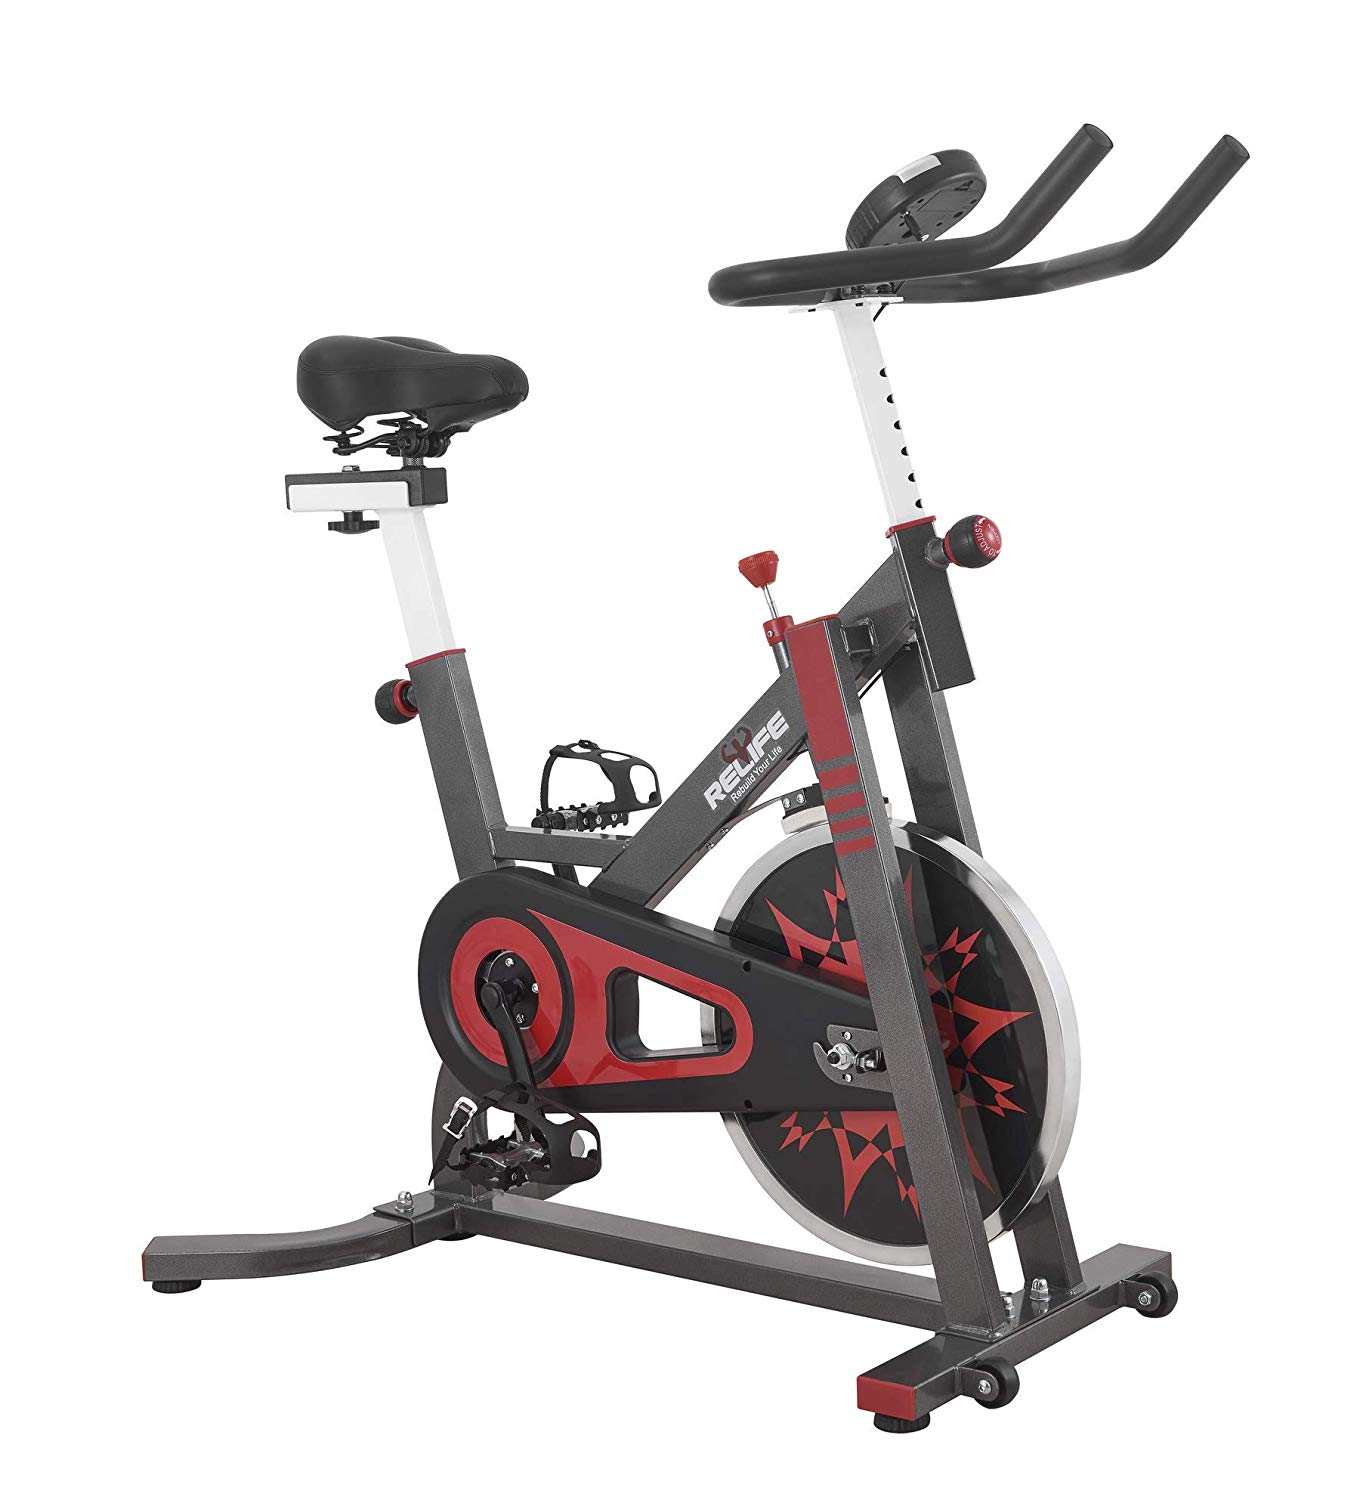 RELIFE REBUILD YOUR LIFE Exercise Bike Cycling Bicycle Indoor Cardio | home gym machine